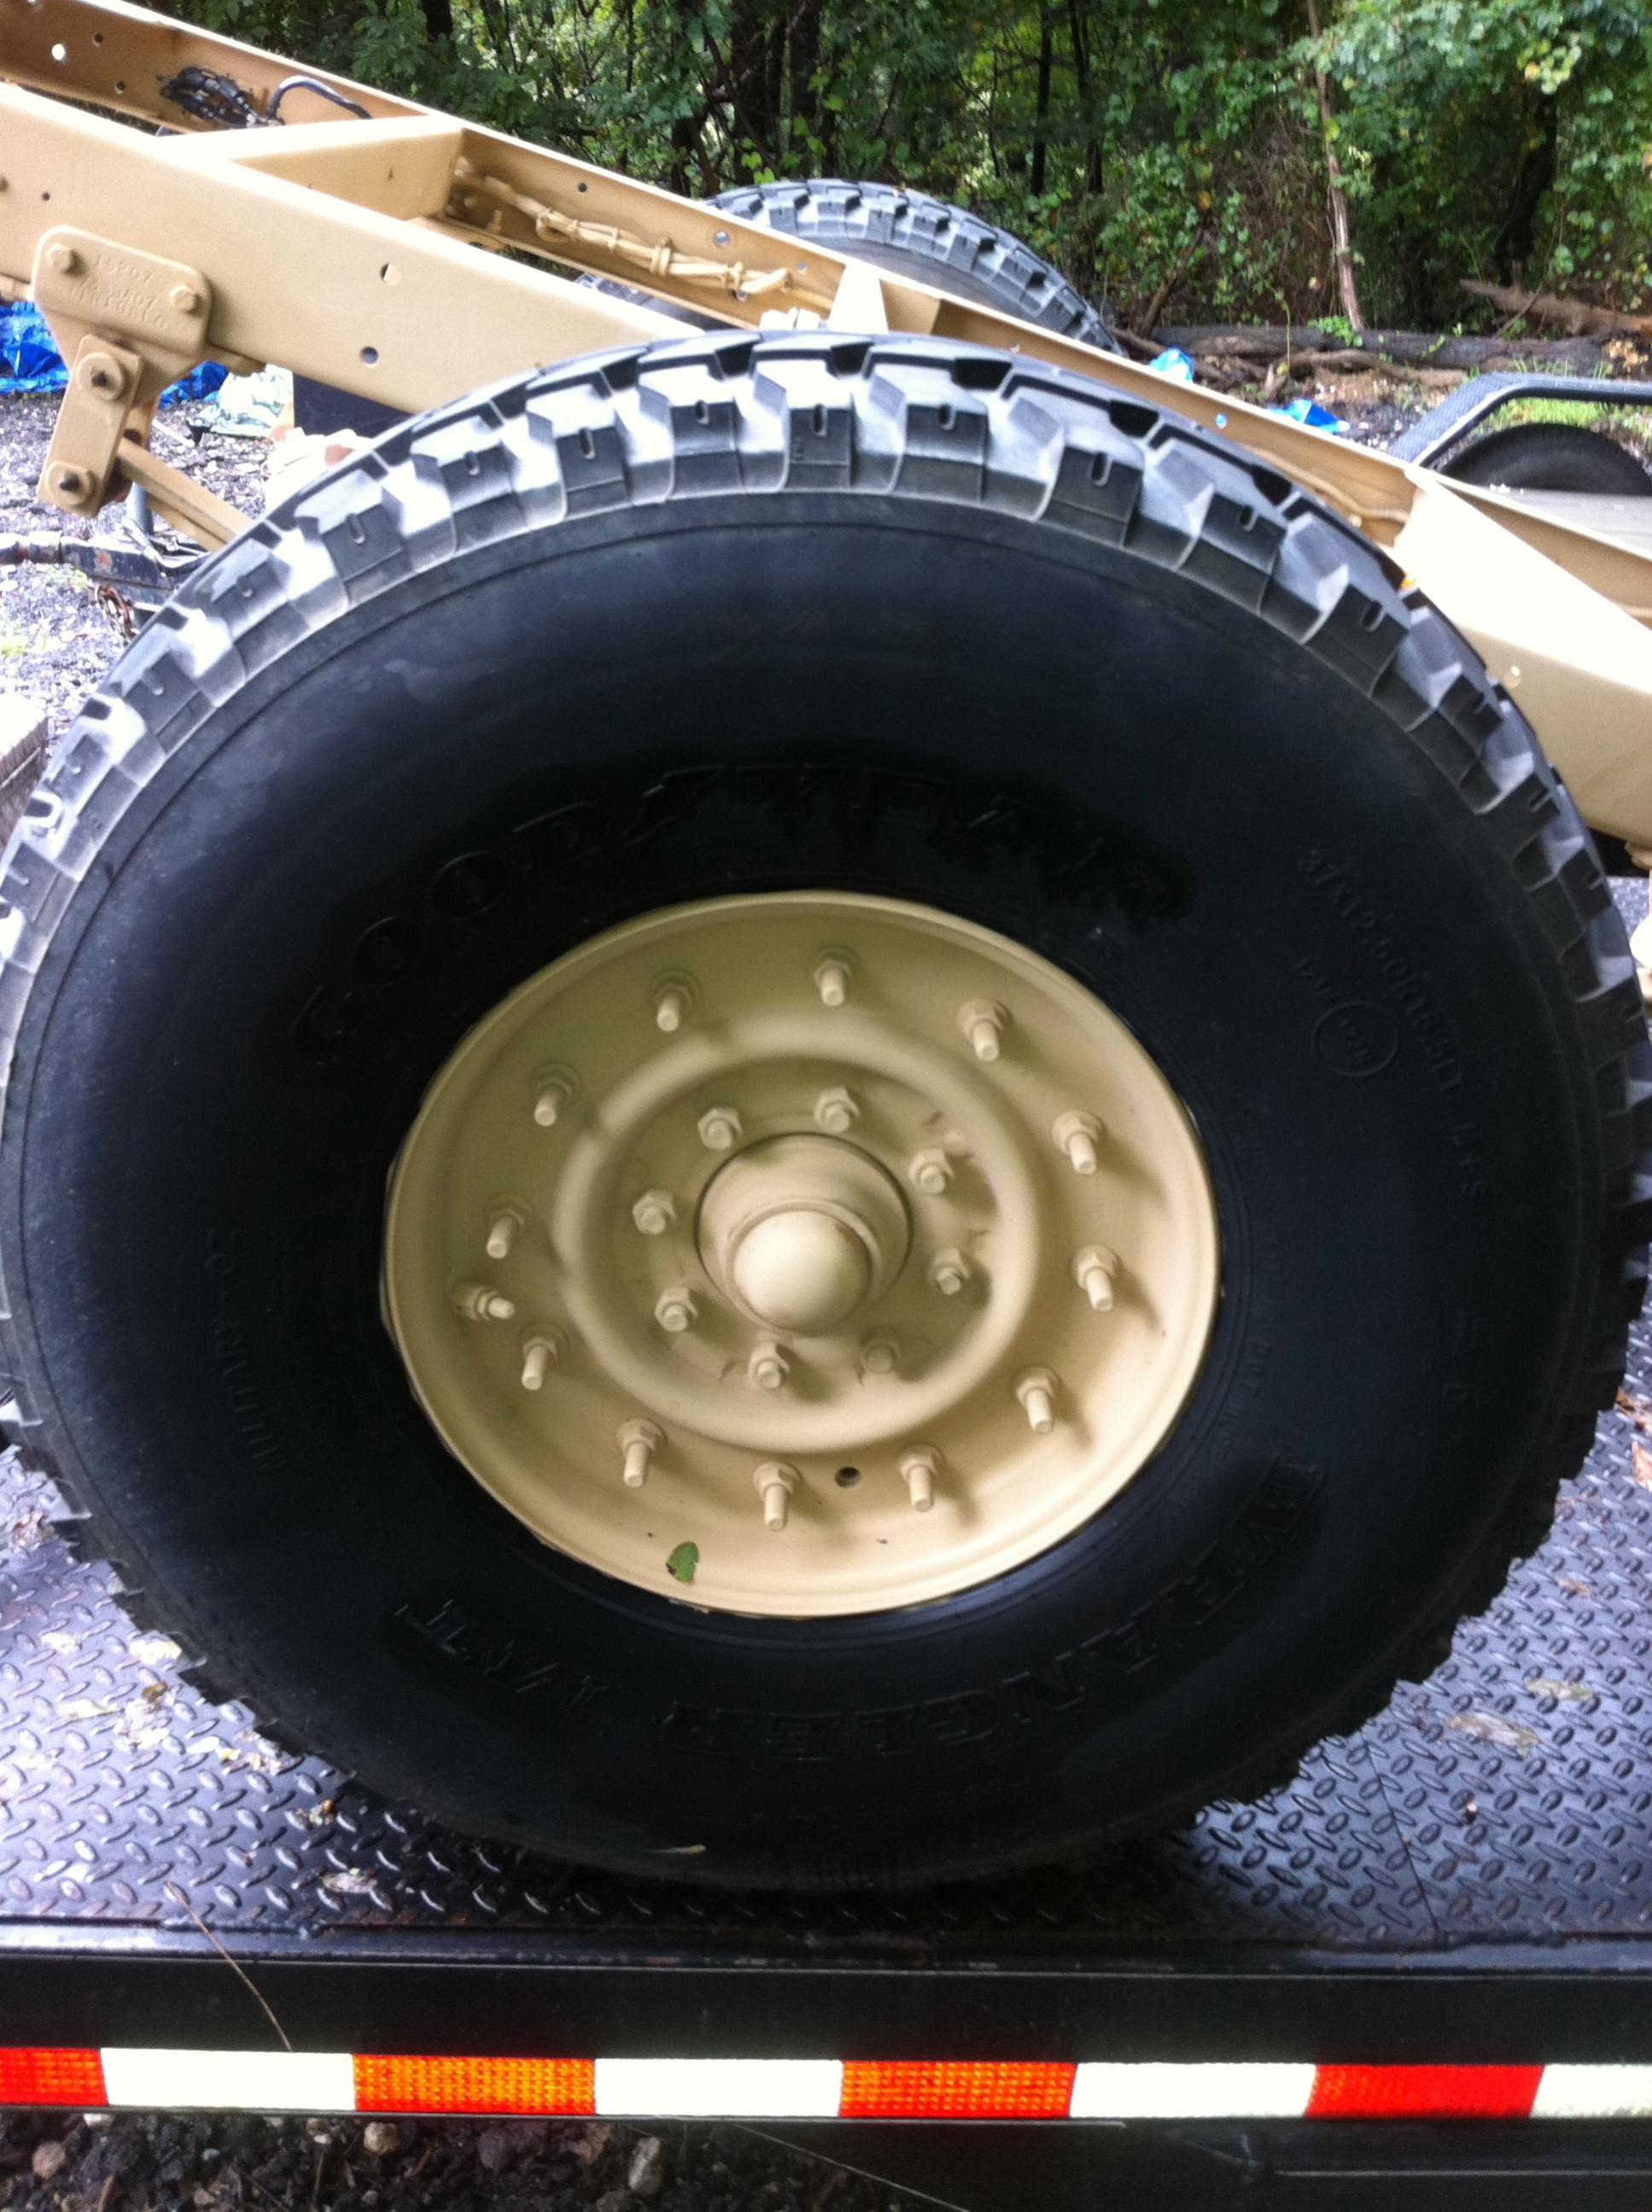 "Hmmvw Hummer 37"" tires and 12 bolt double bead lock wheels with 18"